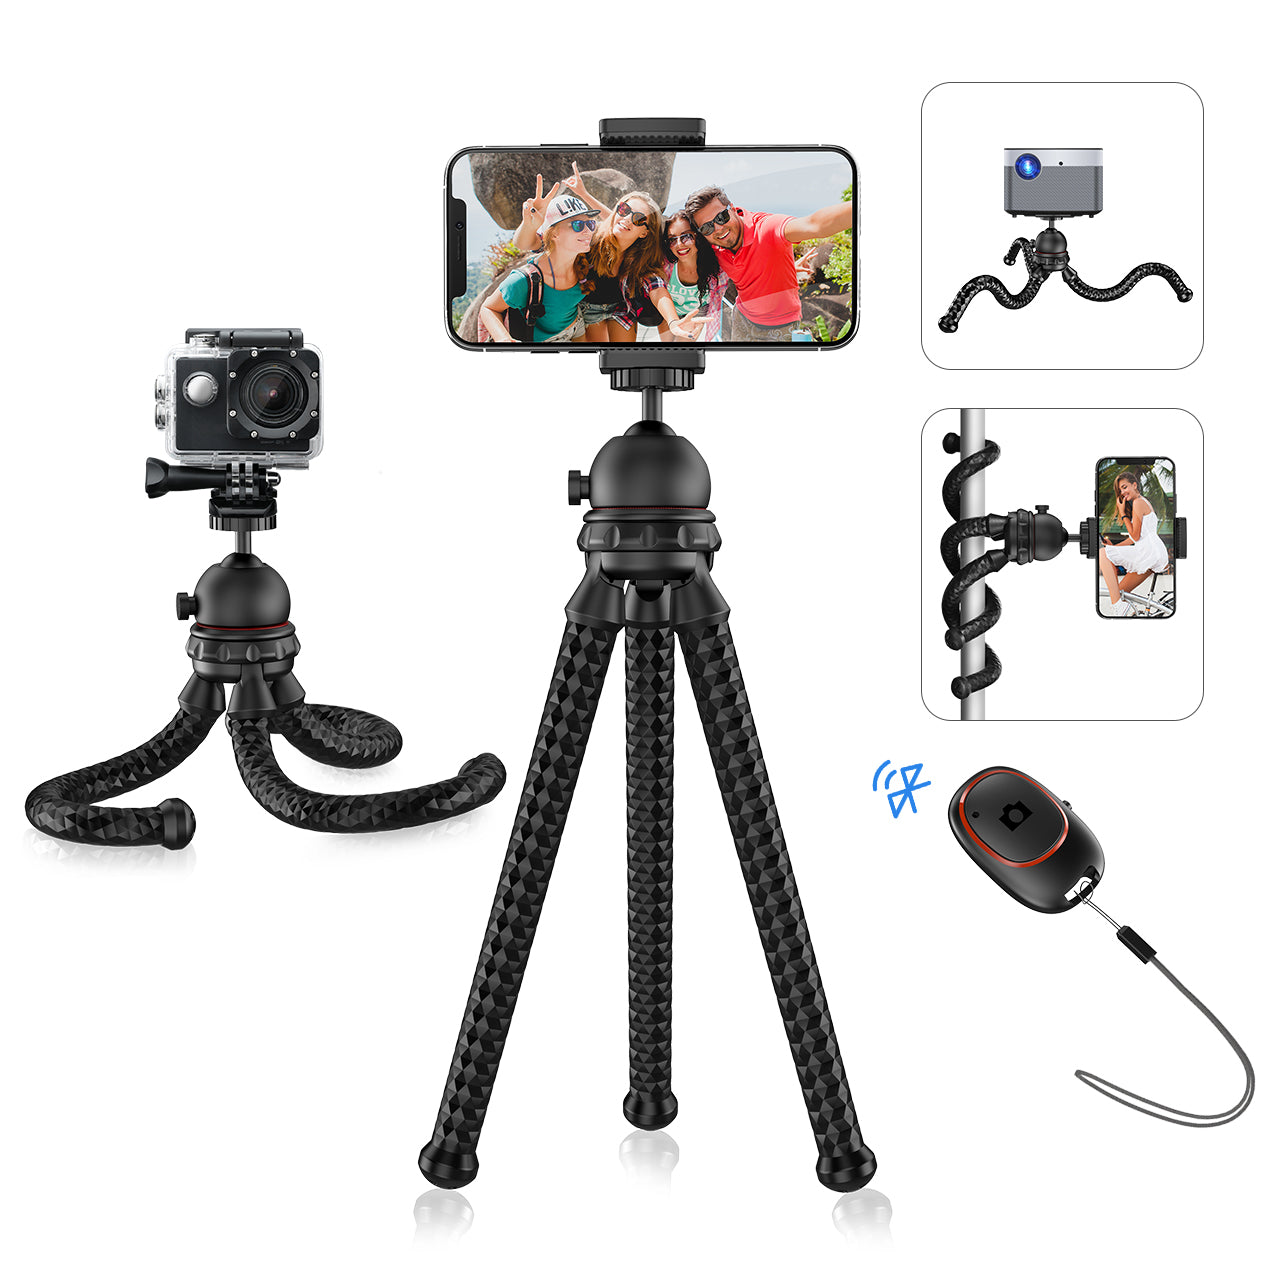 Mpow PA203A Flexible Phone Tripod with Bluetooth 5.0 Remote Shutter